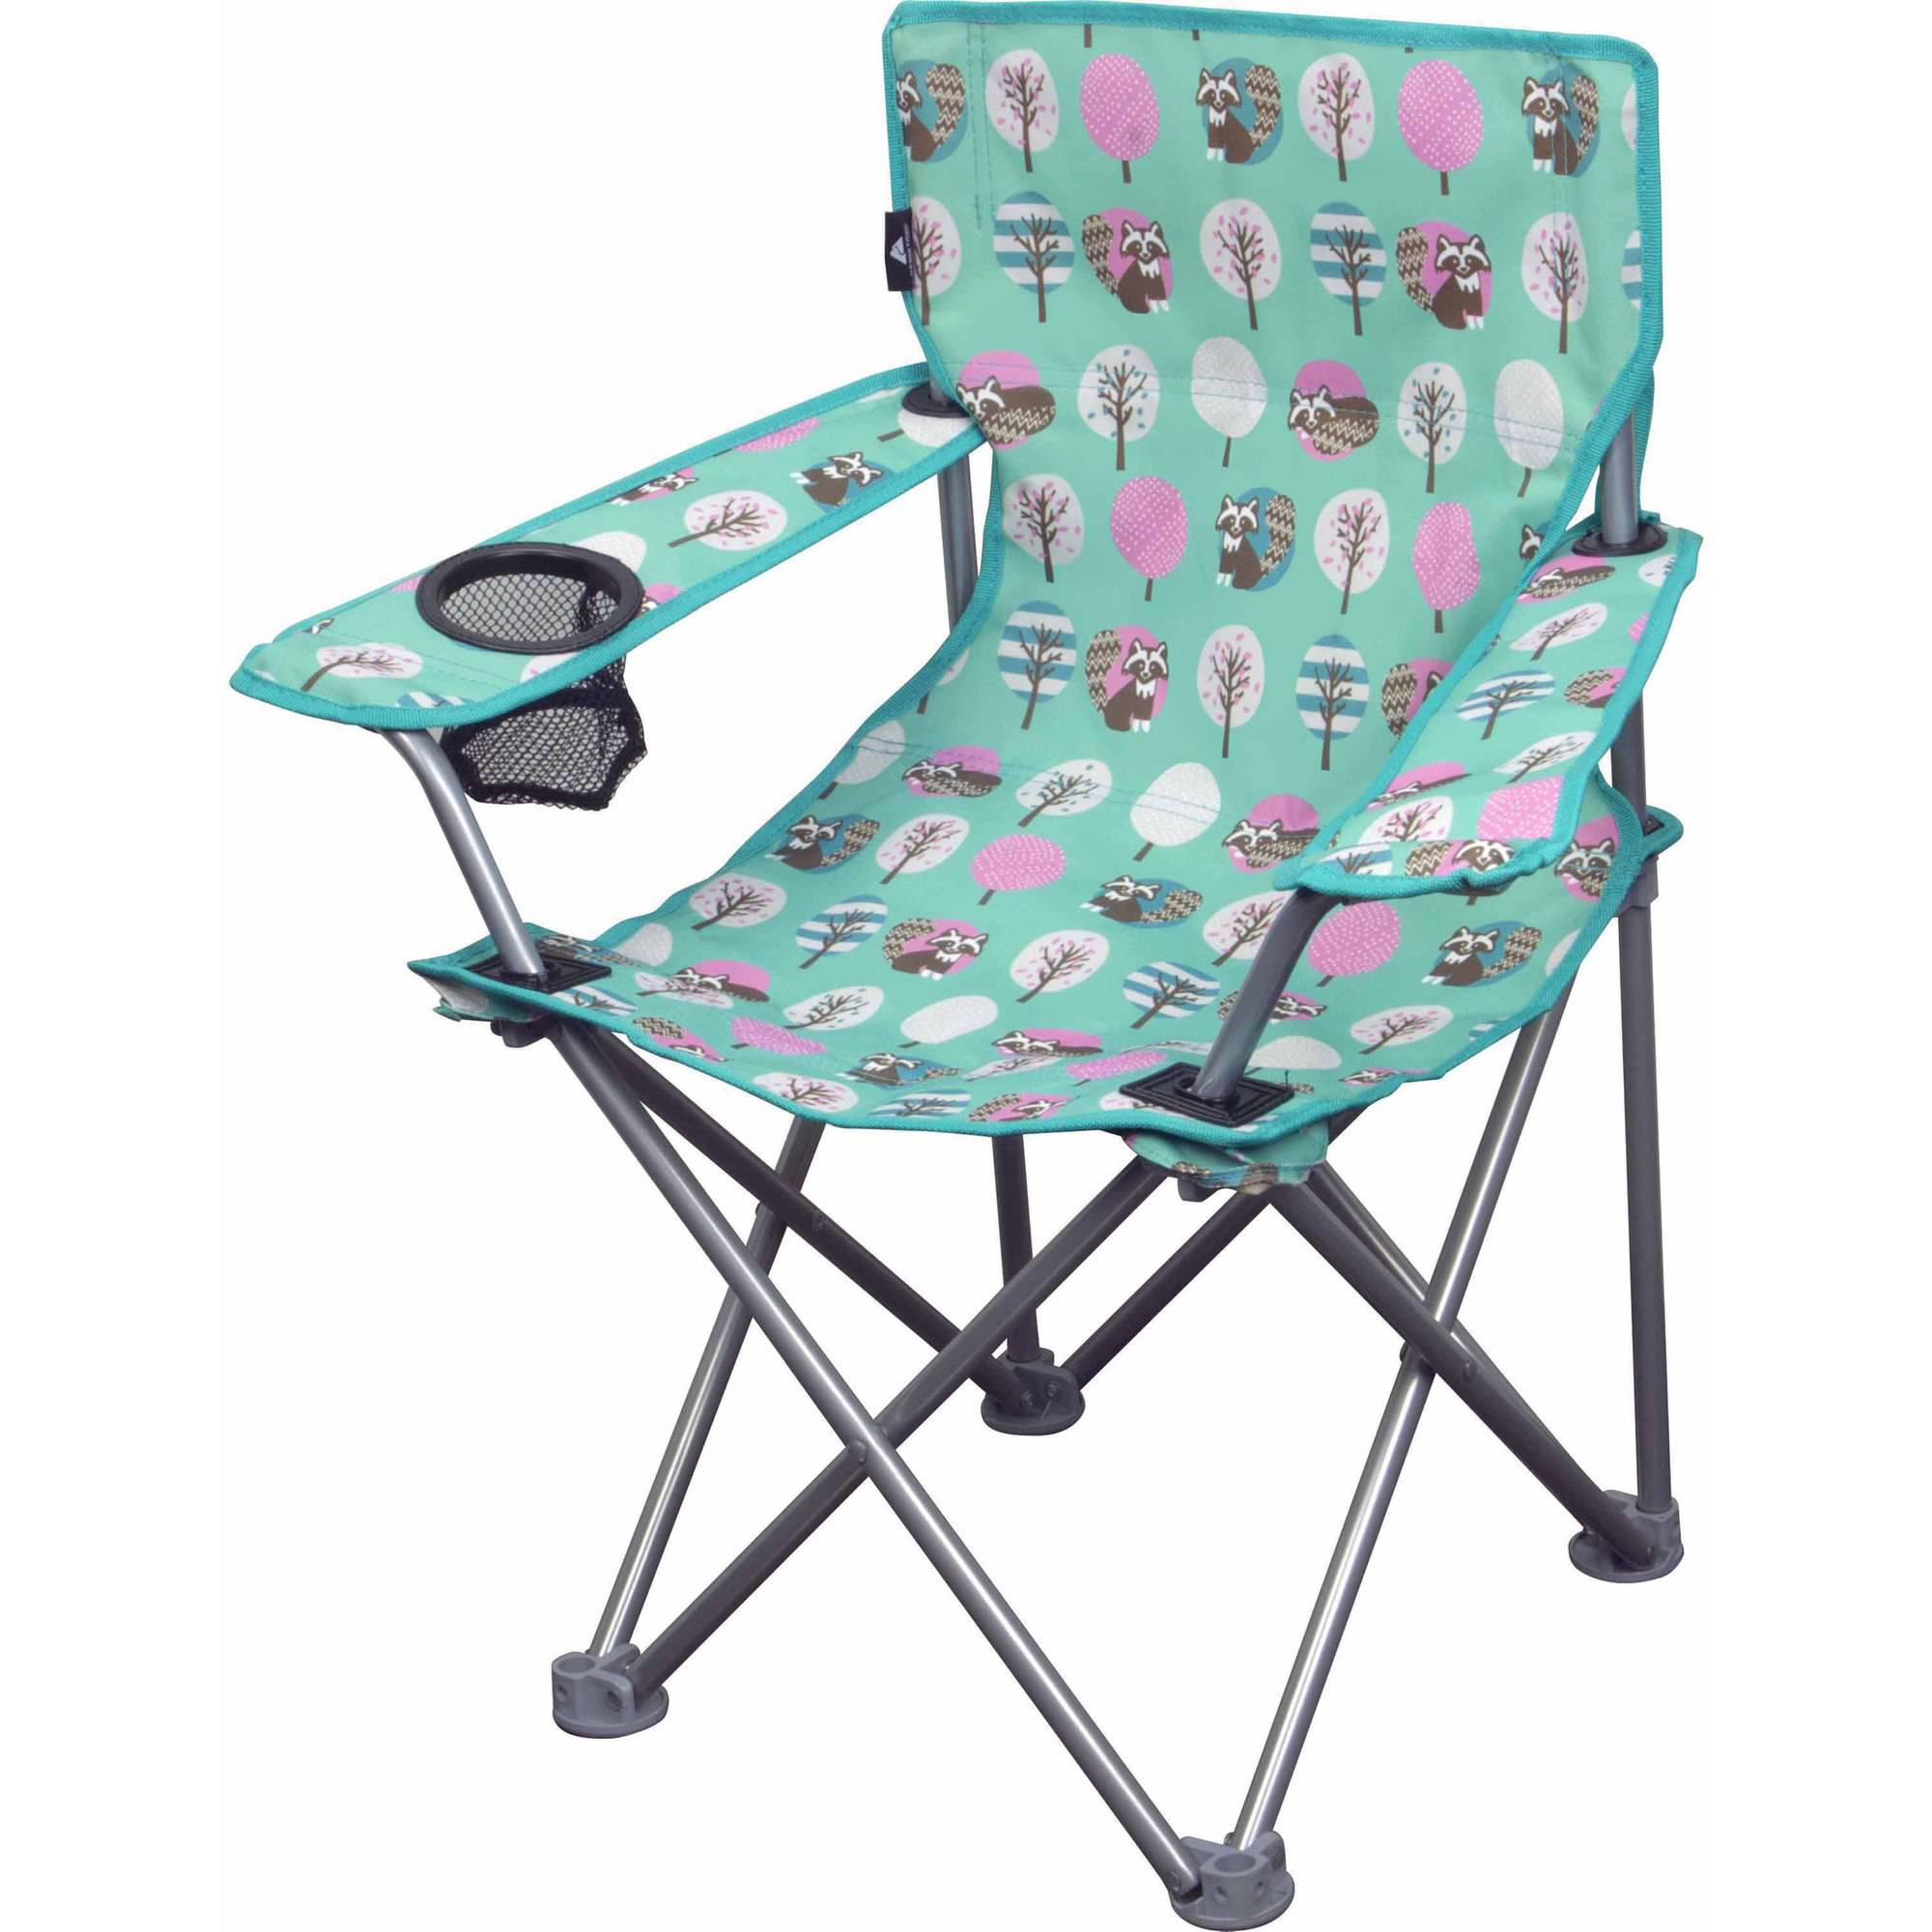 child camping chair office support cushion outdoor wicker furniture for children perfect addition